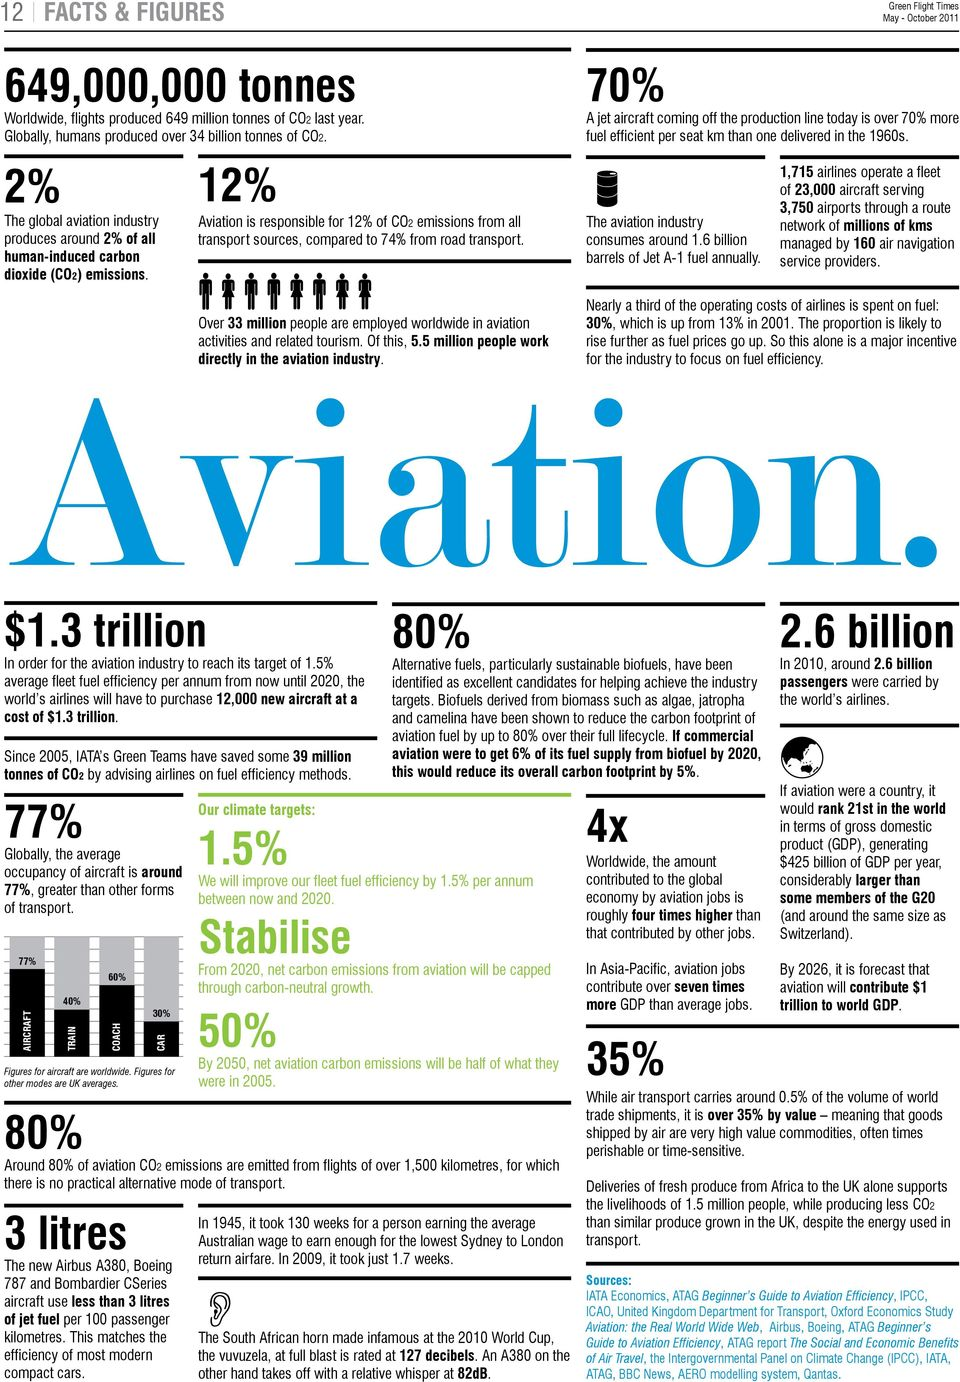 2% 12% The global aviation industry produces around 2% of all human-induced carbon dioxide (CO2) emissions.